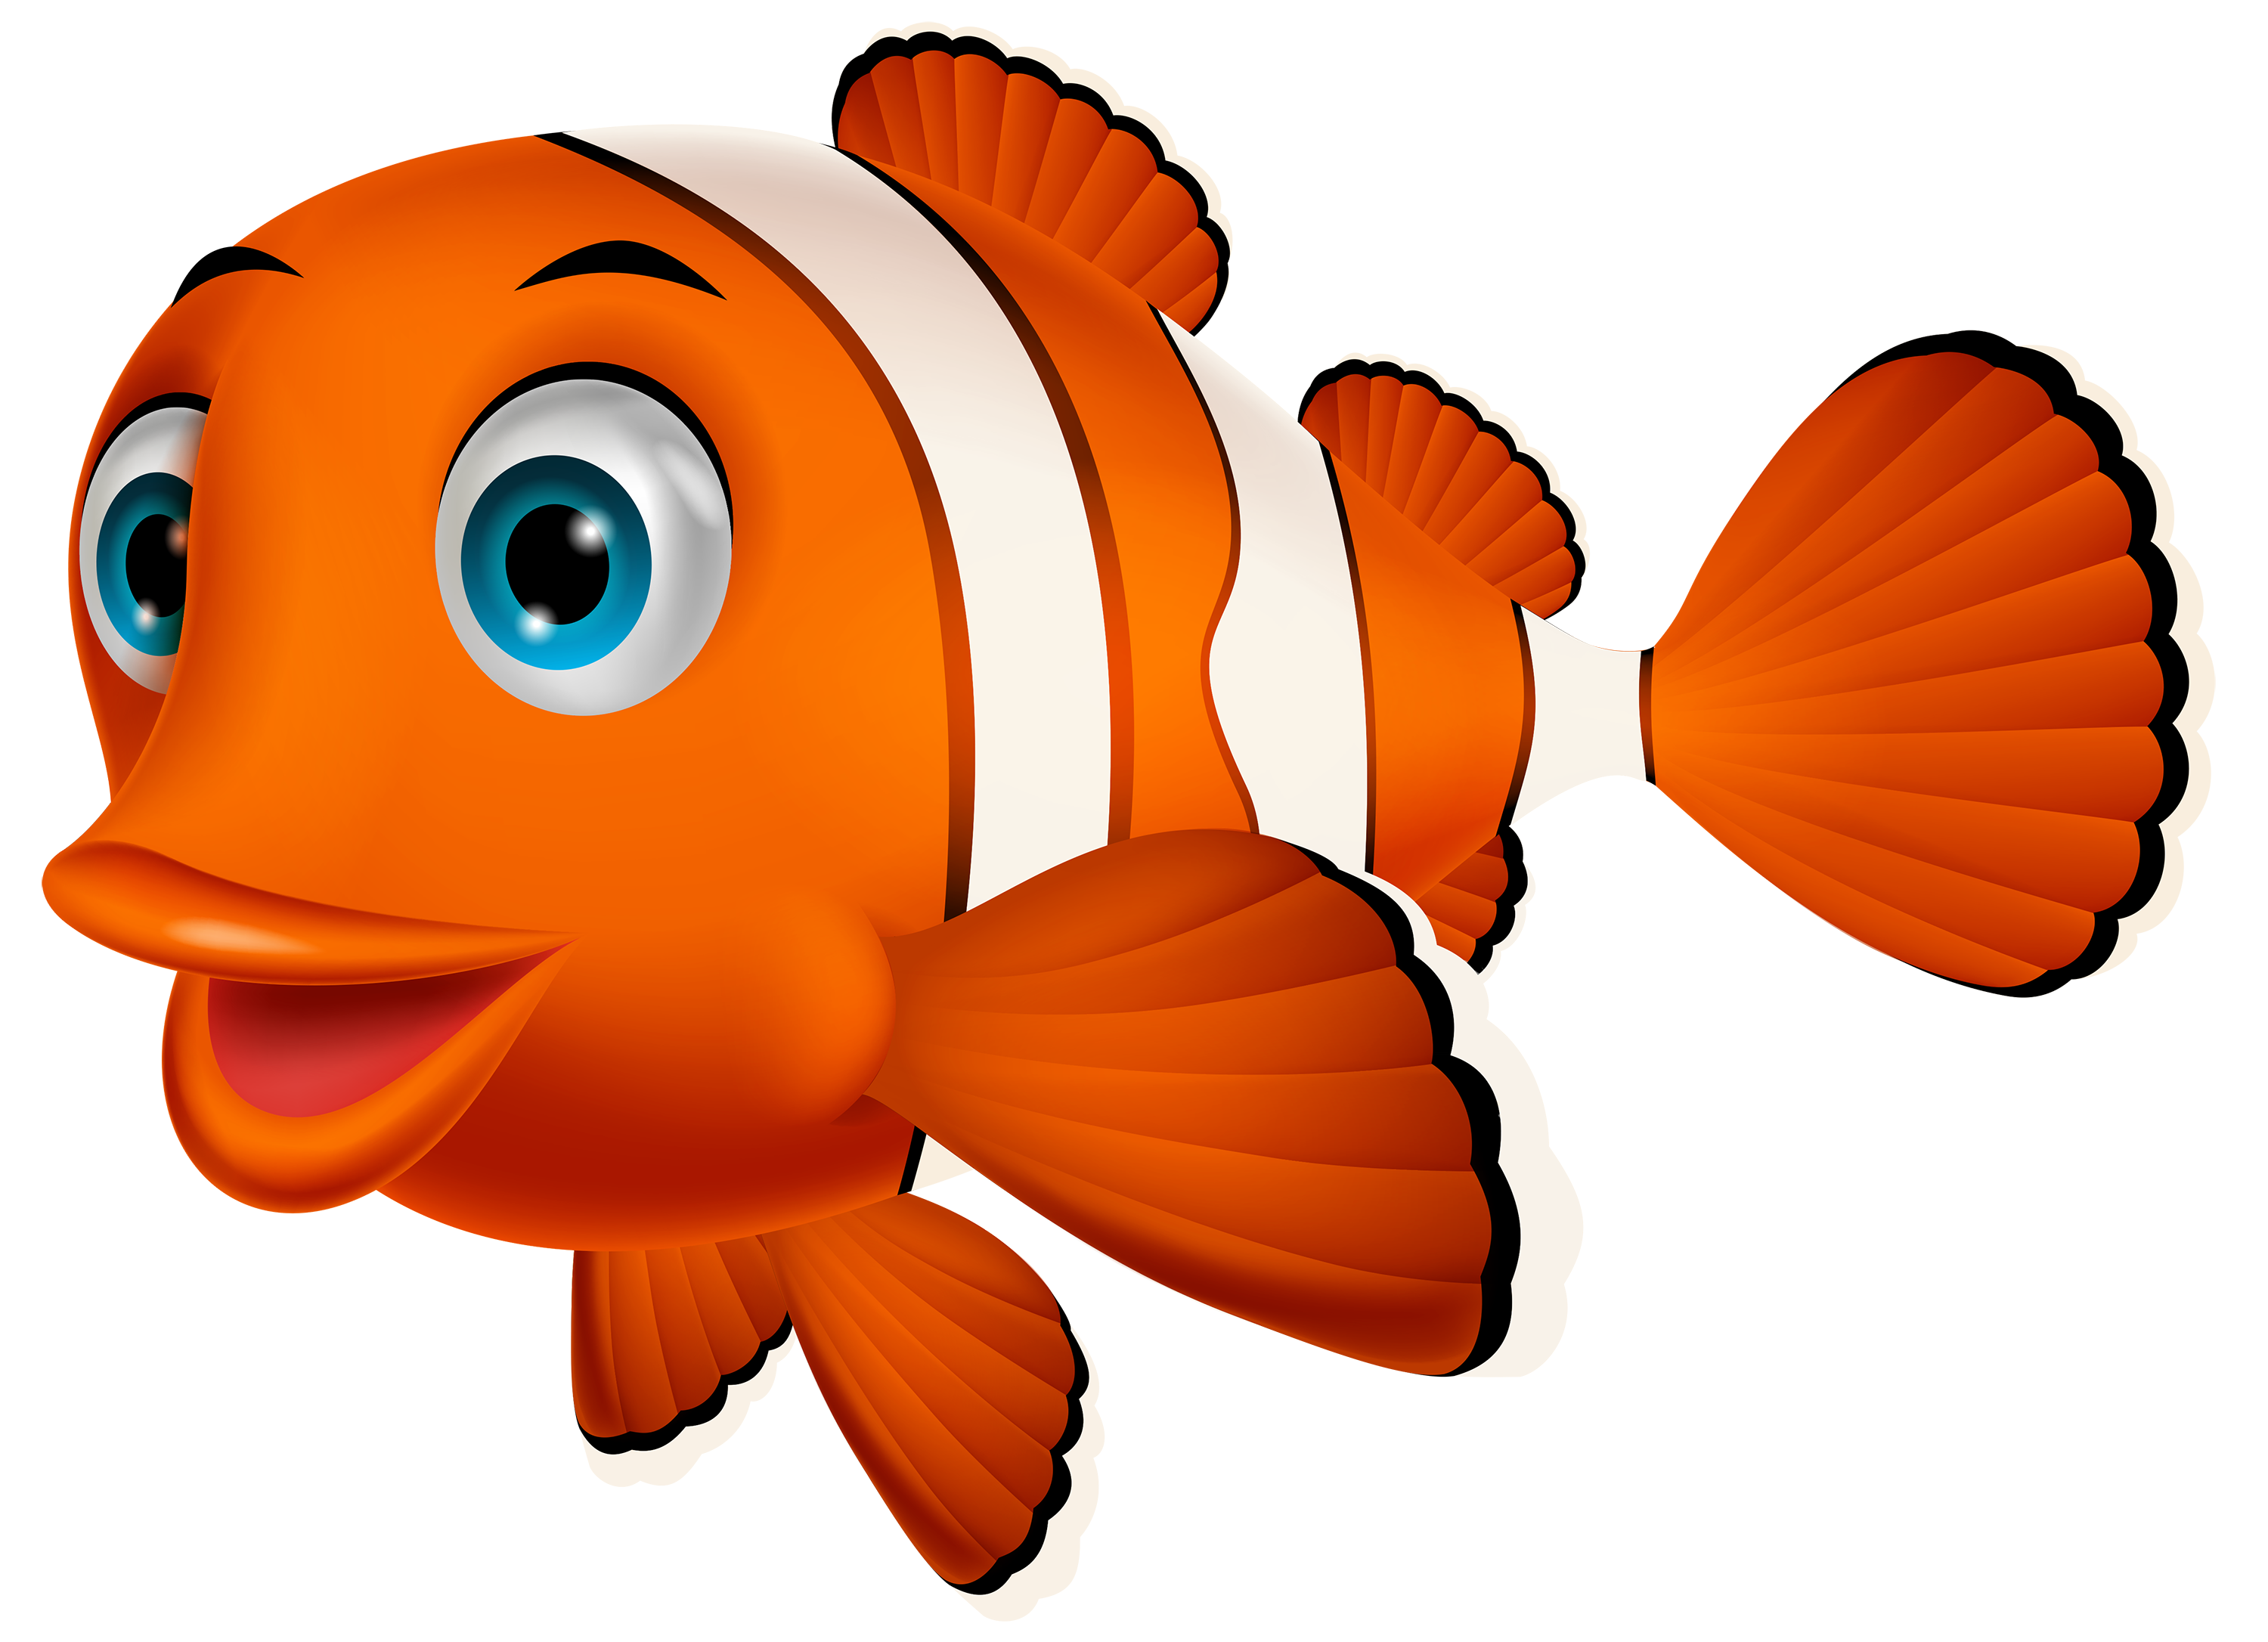 Fish clip art png. Clown clipart best web